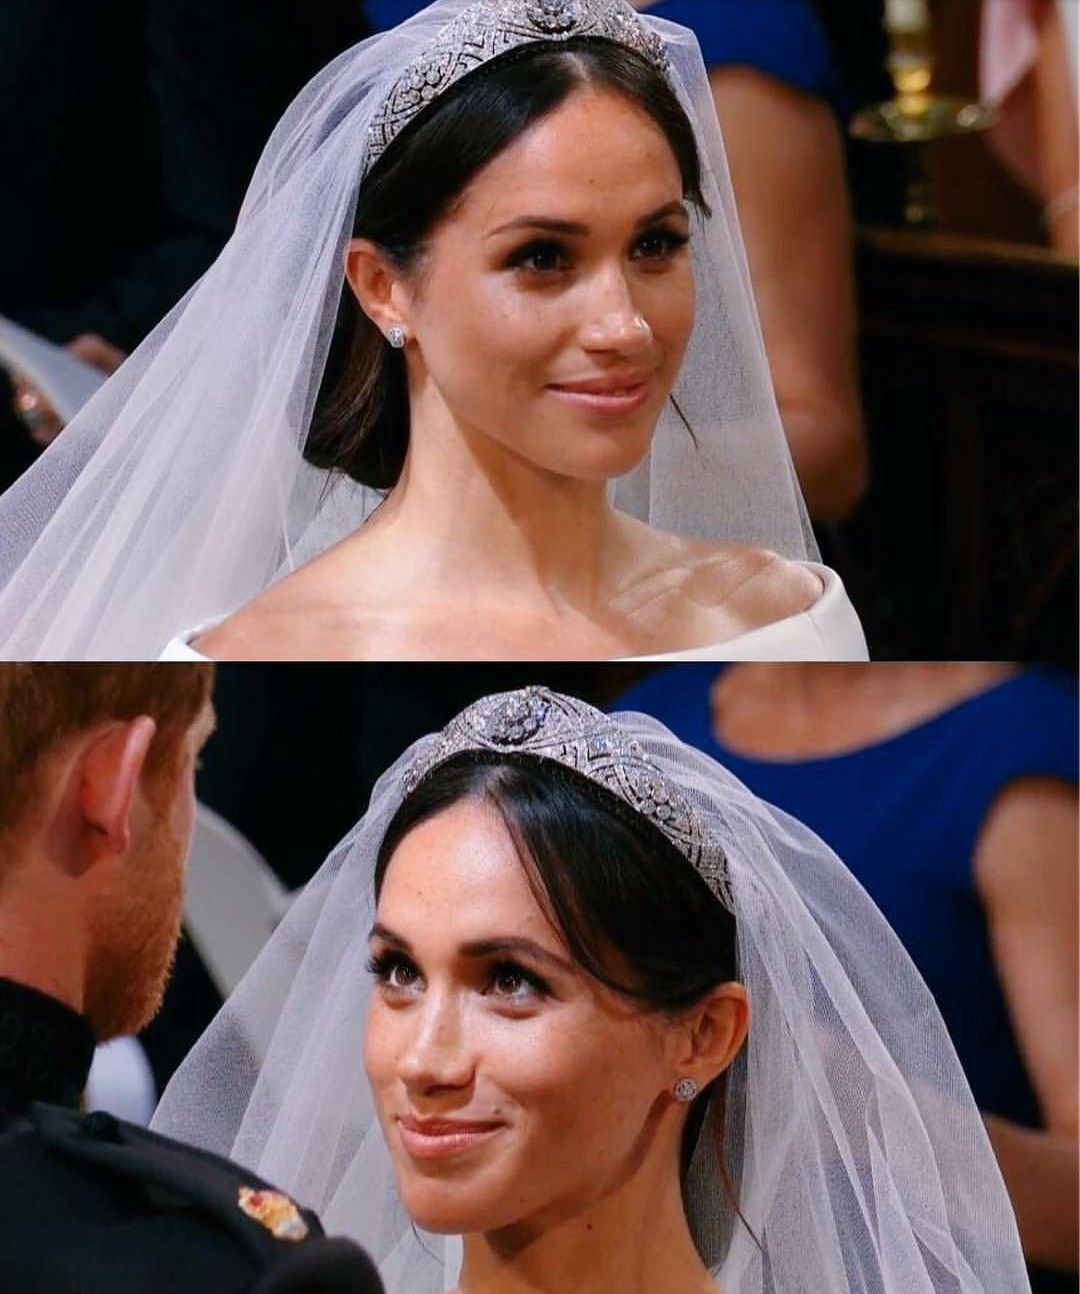 meghan duchess of sussex on her wedding day with prince harry royal brides princess meghan royal weddings her wedding day with prince harry